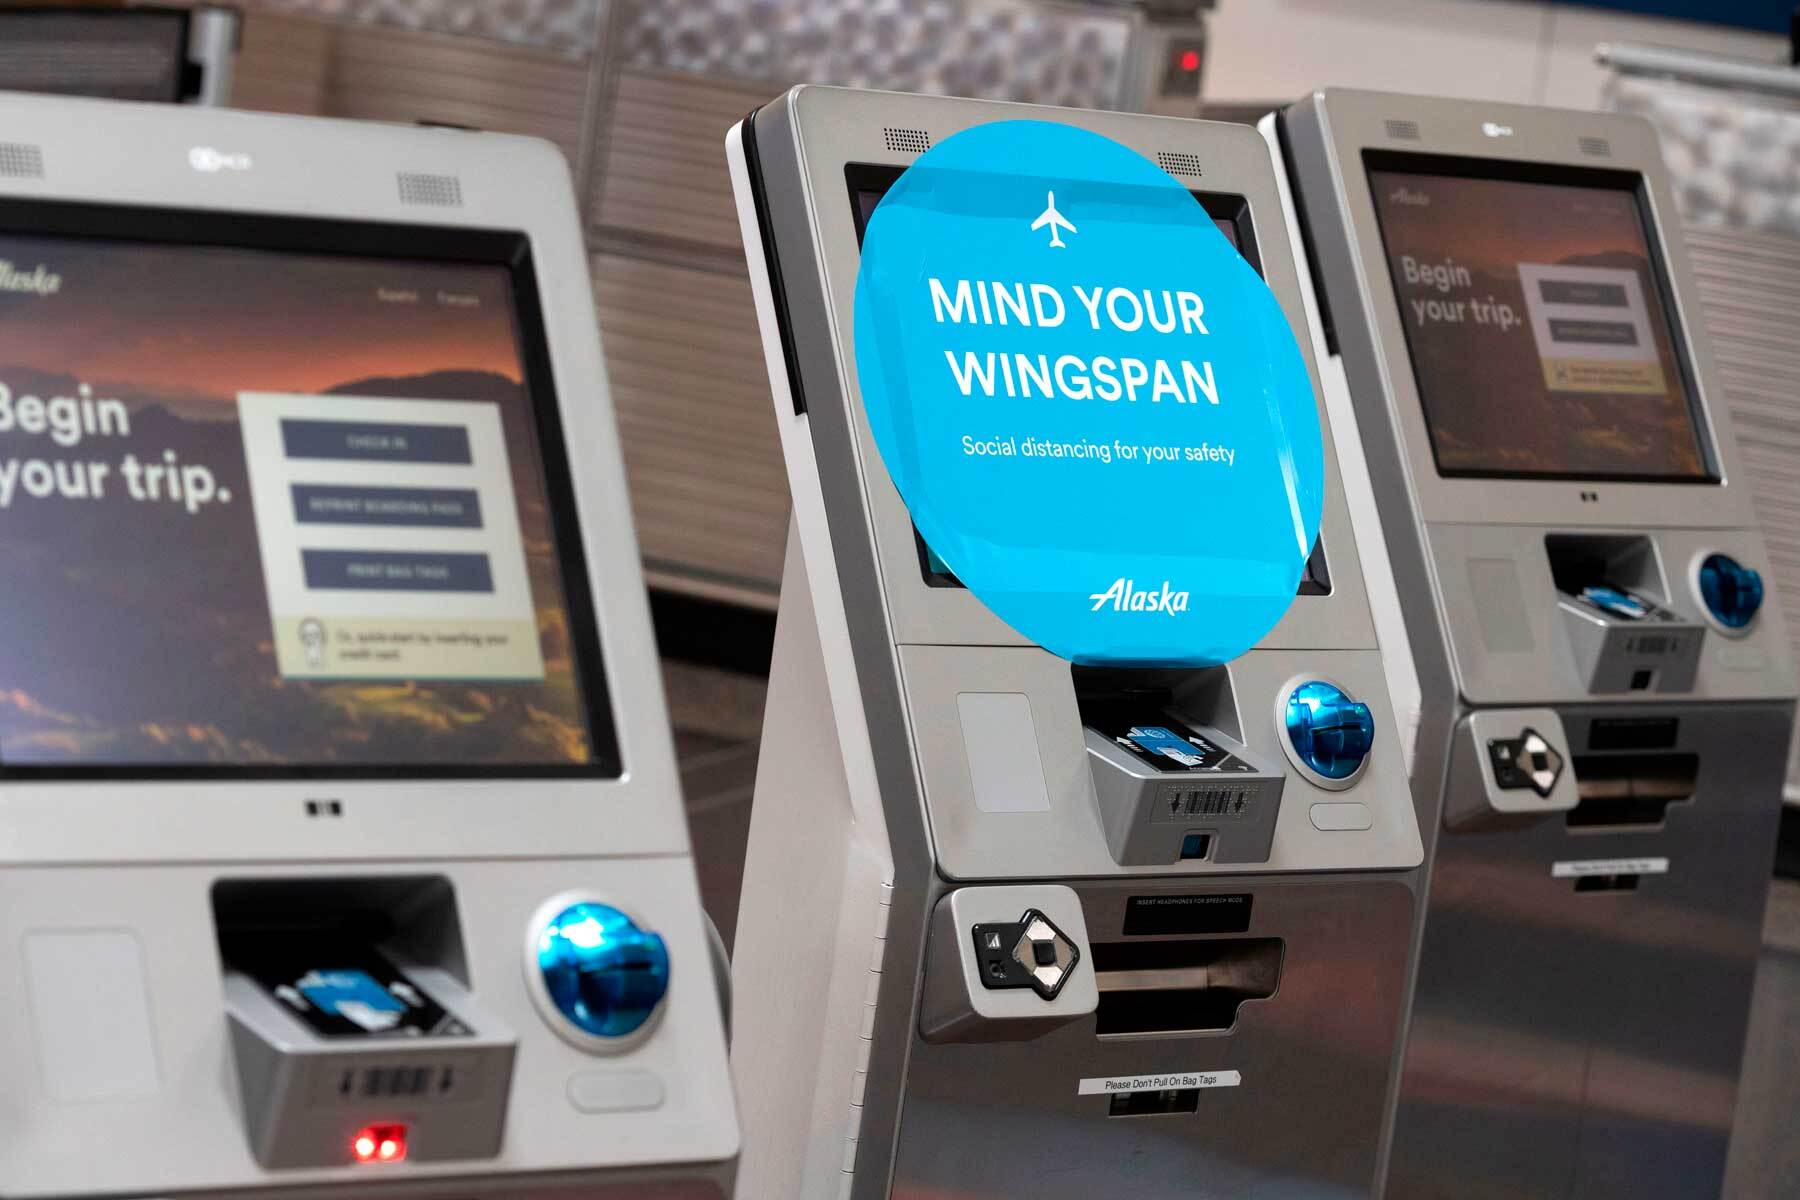 Alaska Airlines check-in terminals